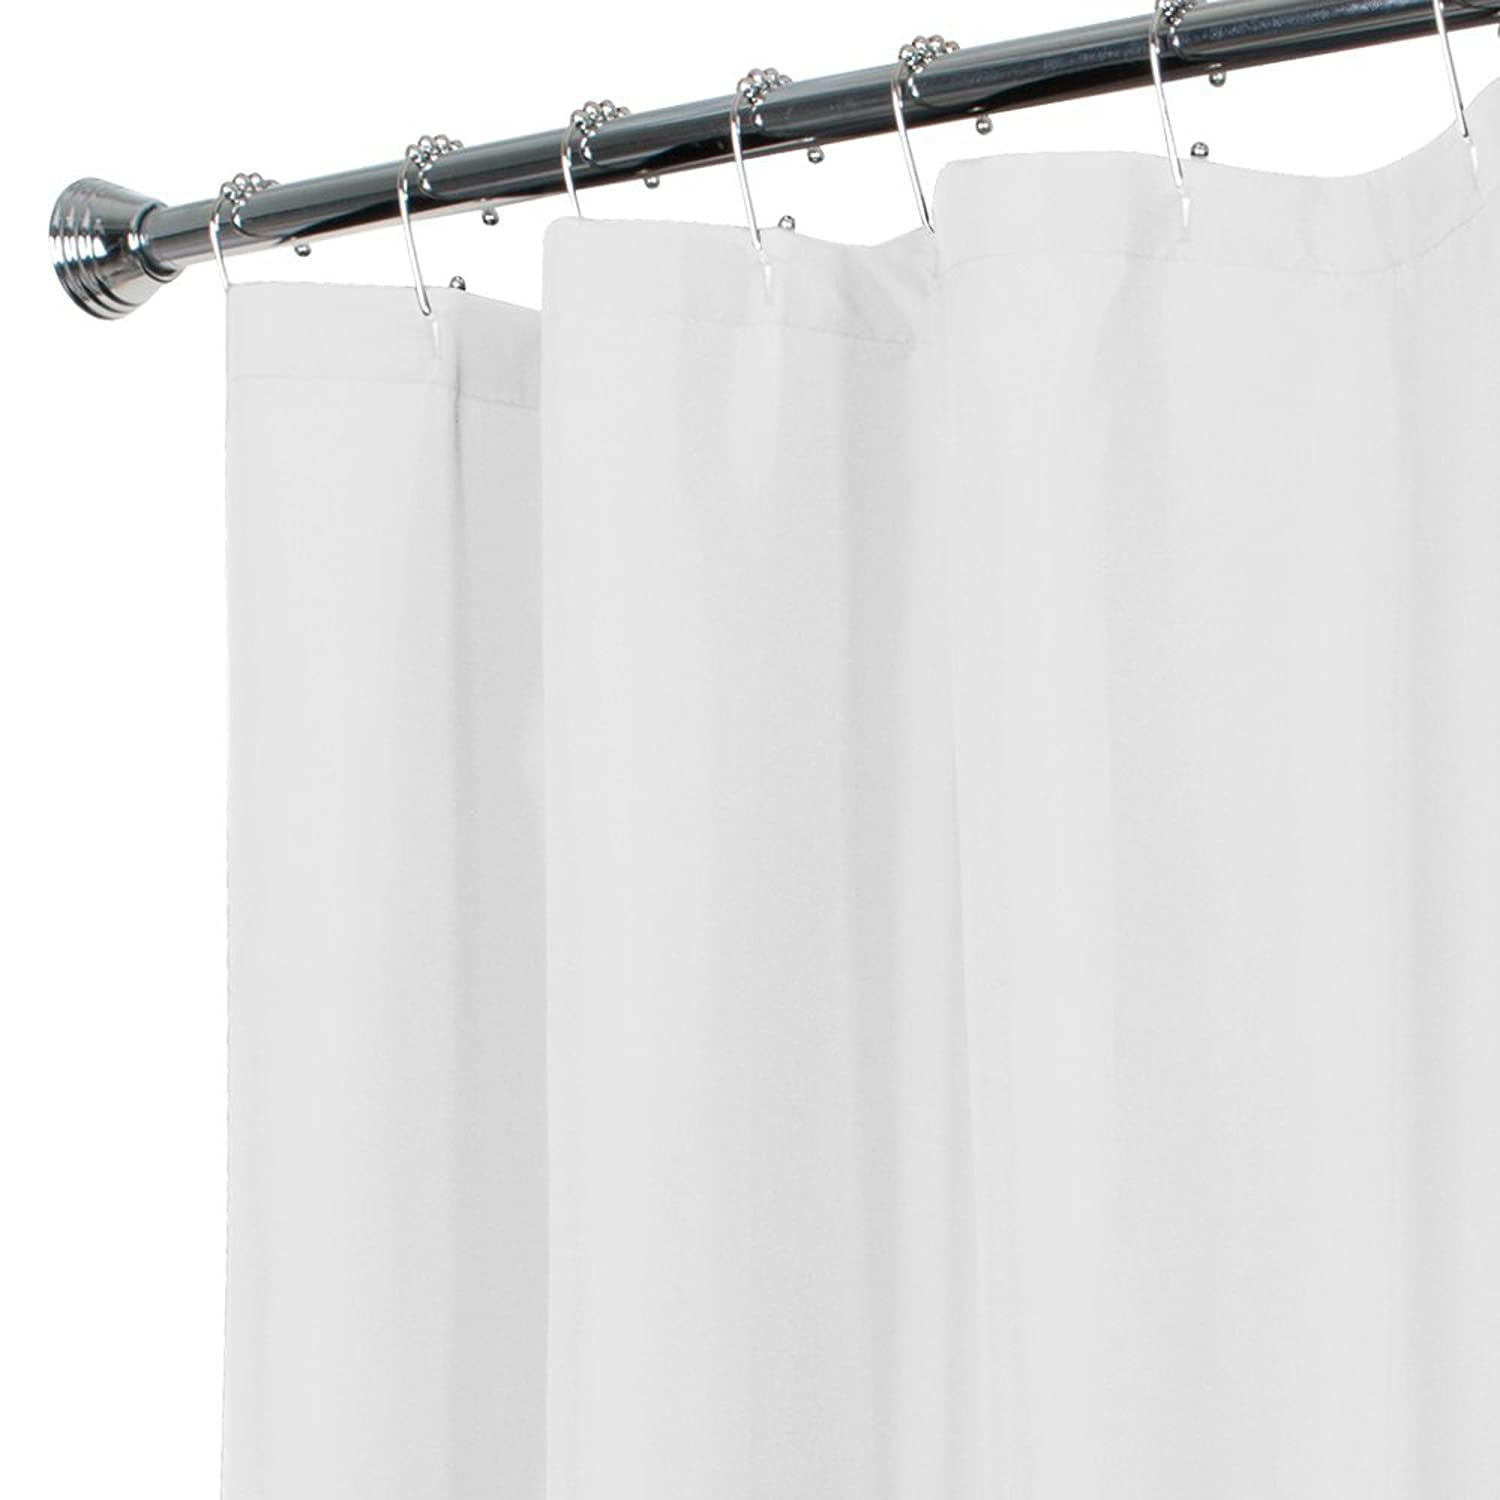 MAYTEX Water Repellent Fabric Shower Curtain or Liner, Machine Washable, 70 x 72, Black 72639